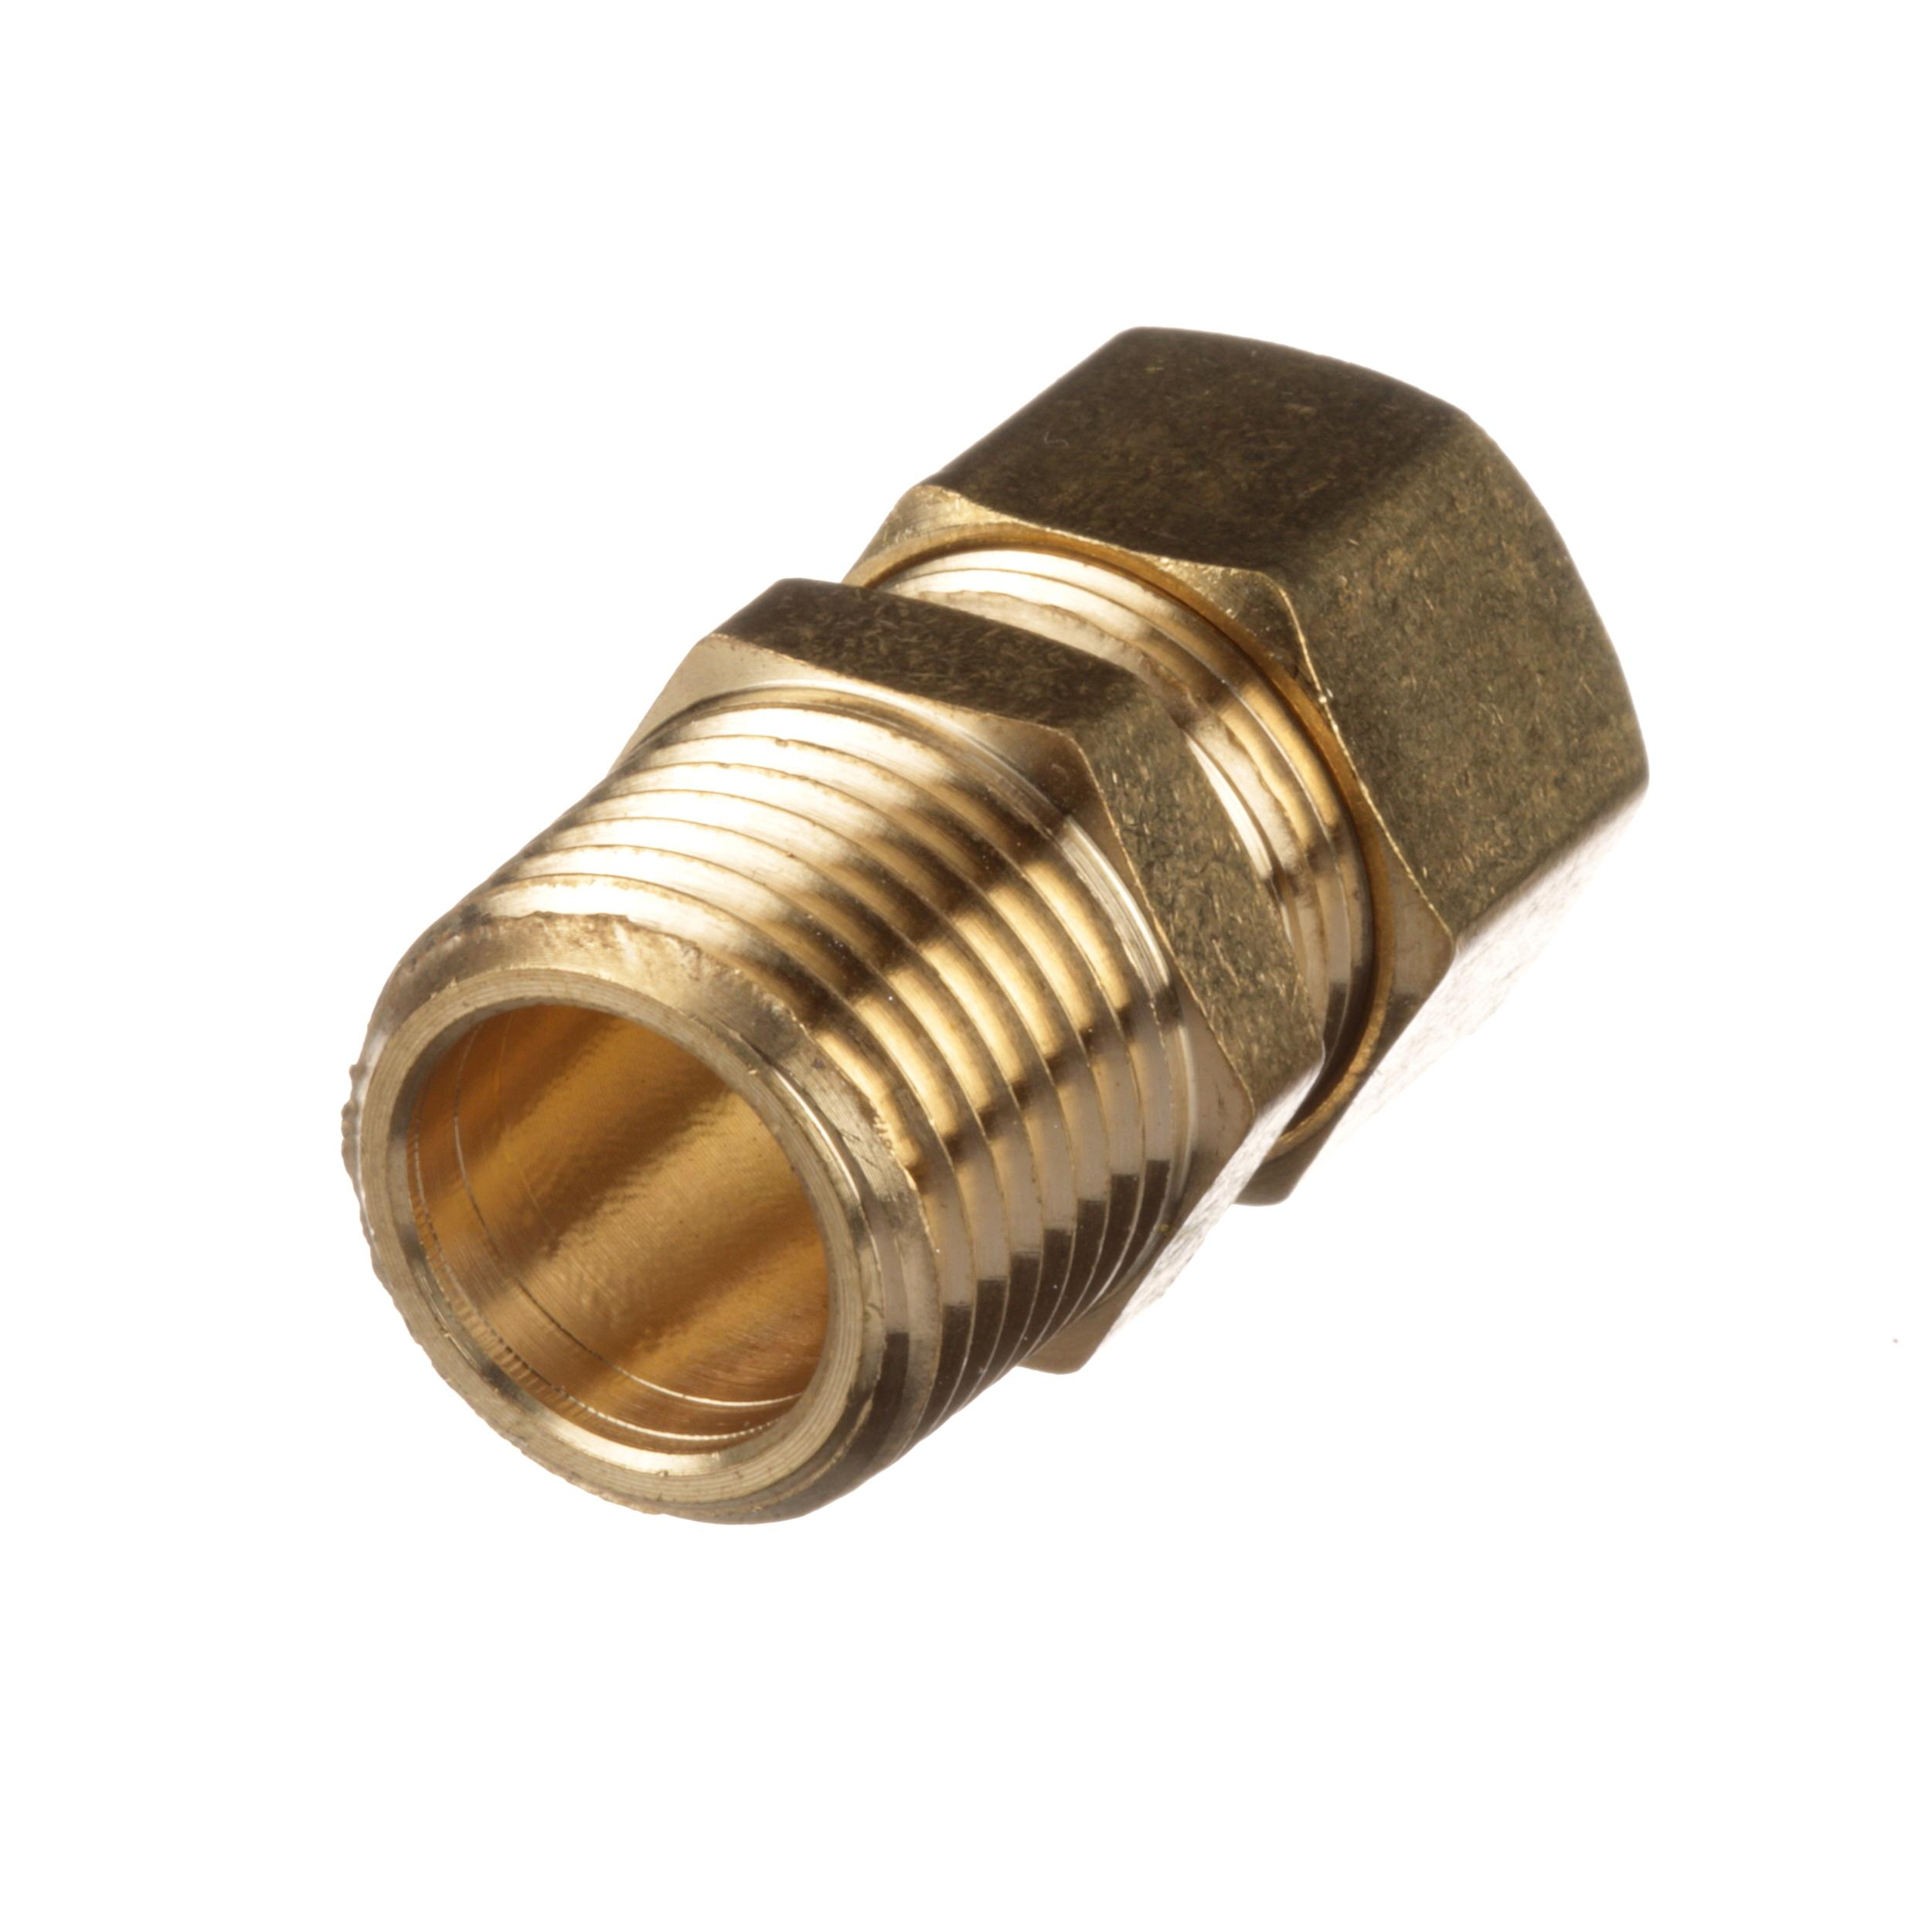 Groen compression fitting part z